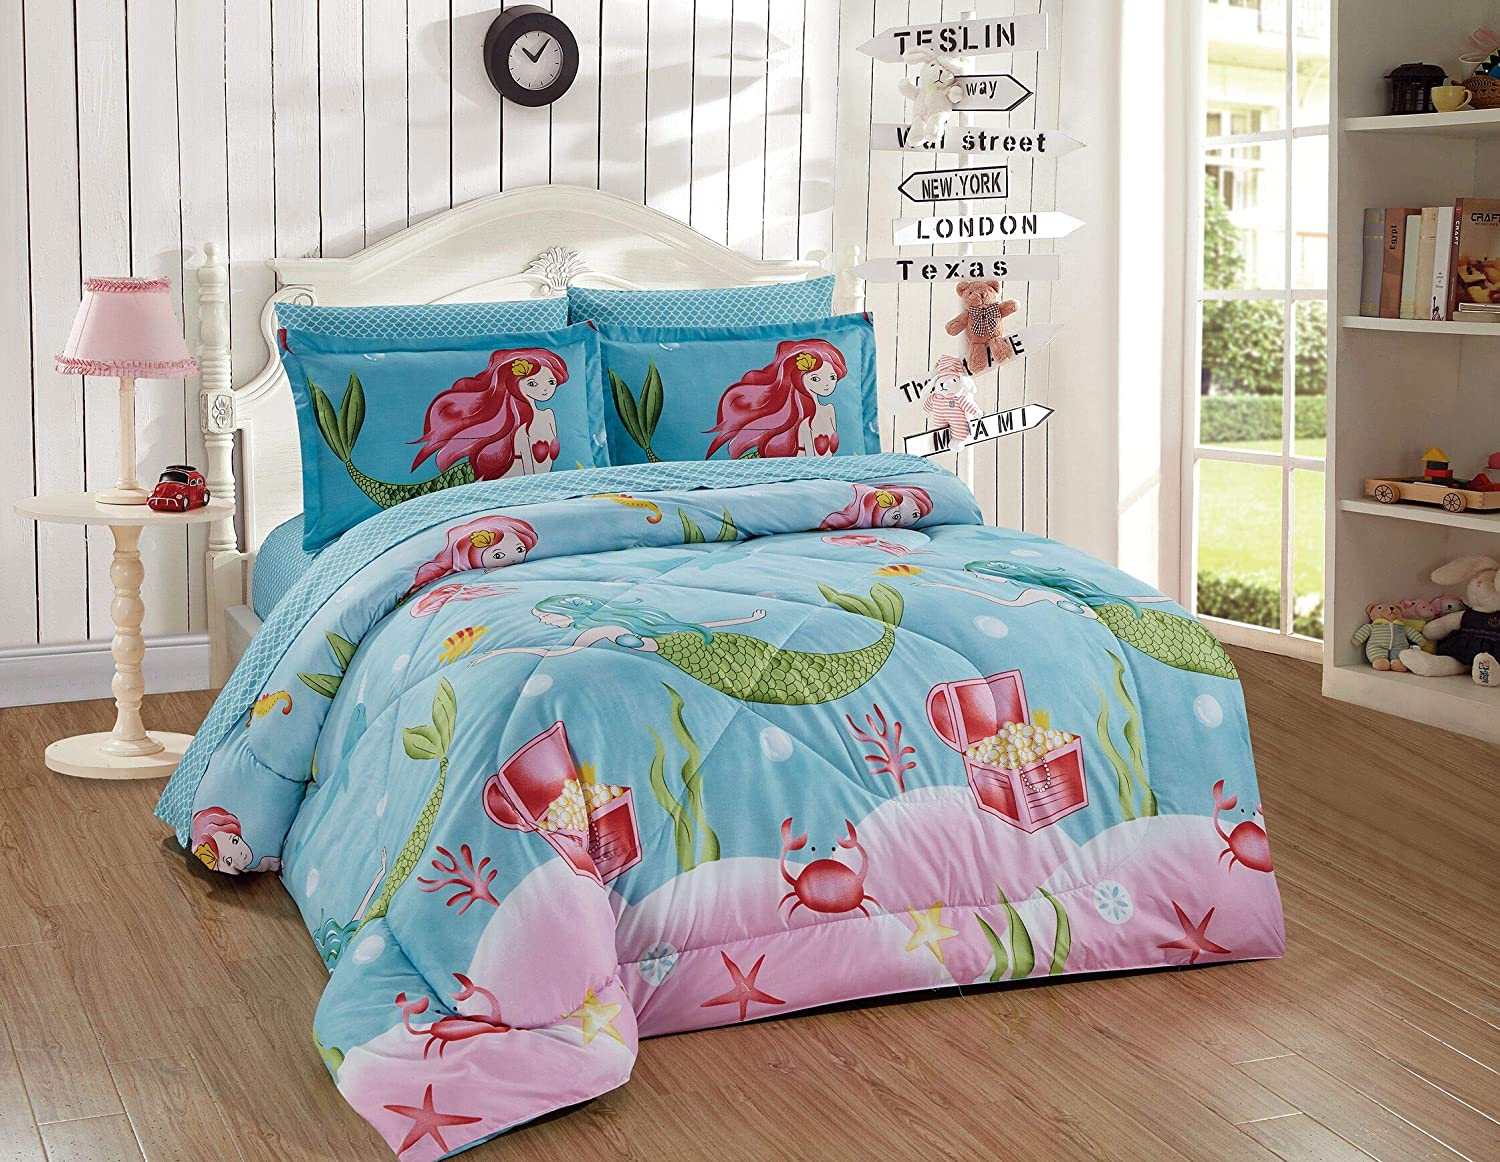 Better Home Style Blue Pink Green Under the Sea Life Mermaid with Crabs and Starfish Printed Fun Design 5 Piece Comforter Bedding Set for Girls Teens Bed in a Bag with Sheets # Mermaid Treasure (Twin)